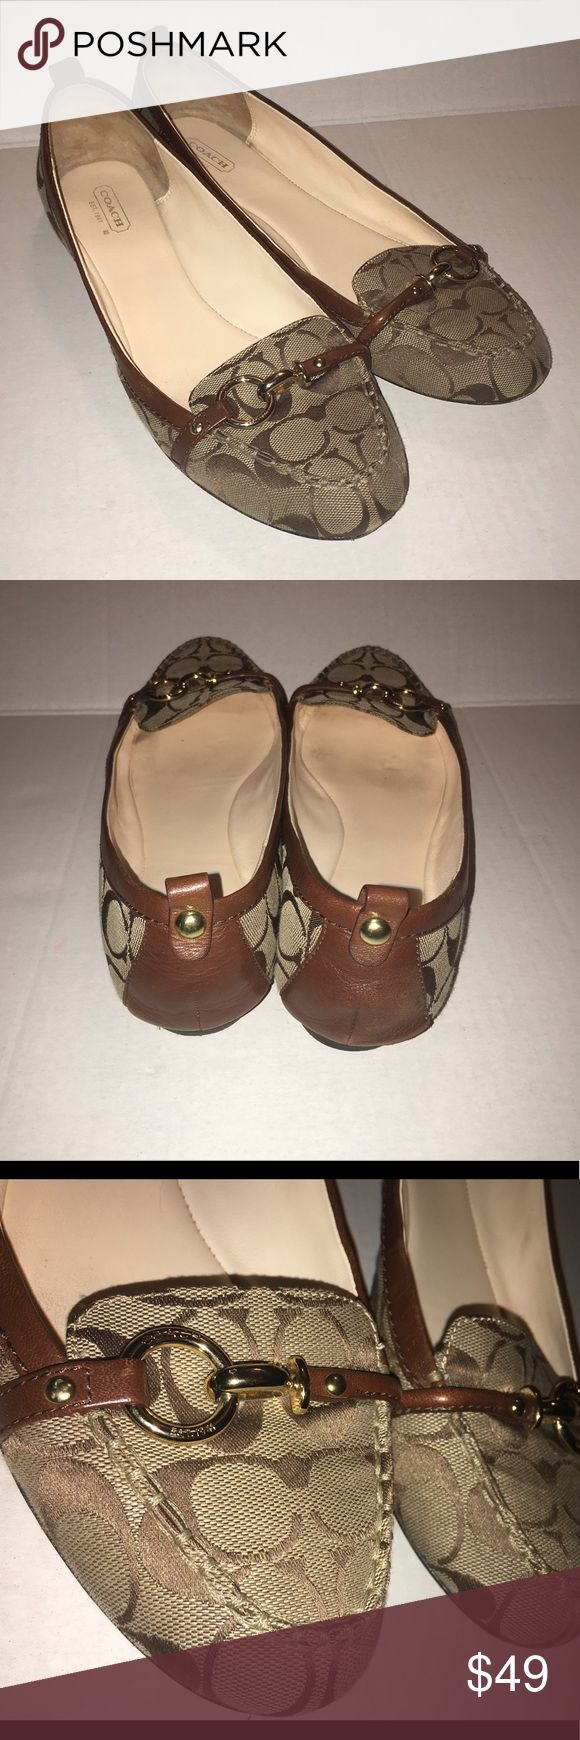 Coach flats shoes women's 11.5 Beautiful flats that never go out of style, light wear on inner leather shown in last pic. Fabric is in great condition no issues. Any questions just ask :) Coach Shoes Flats & Loafers